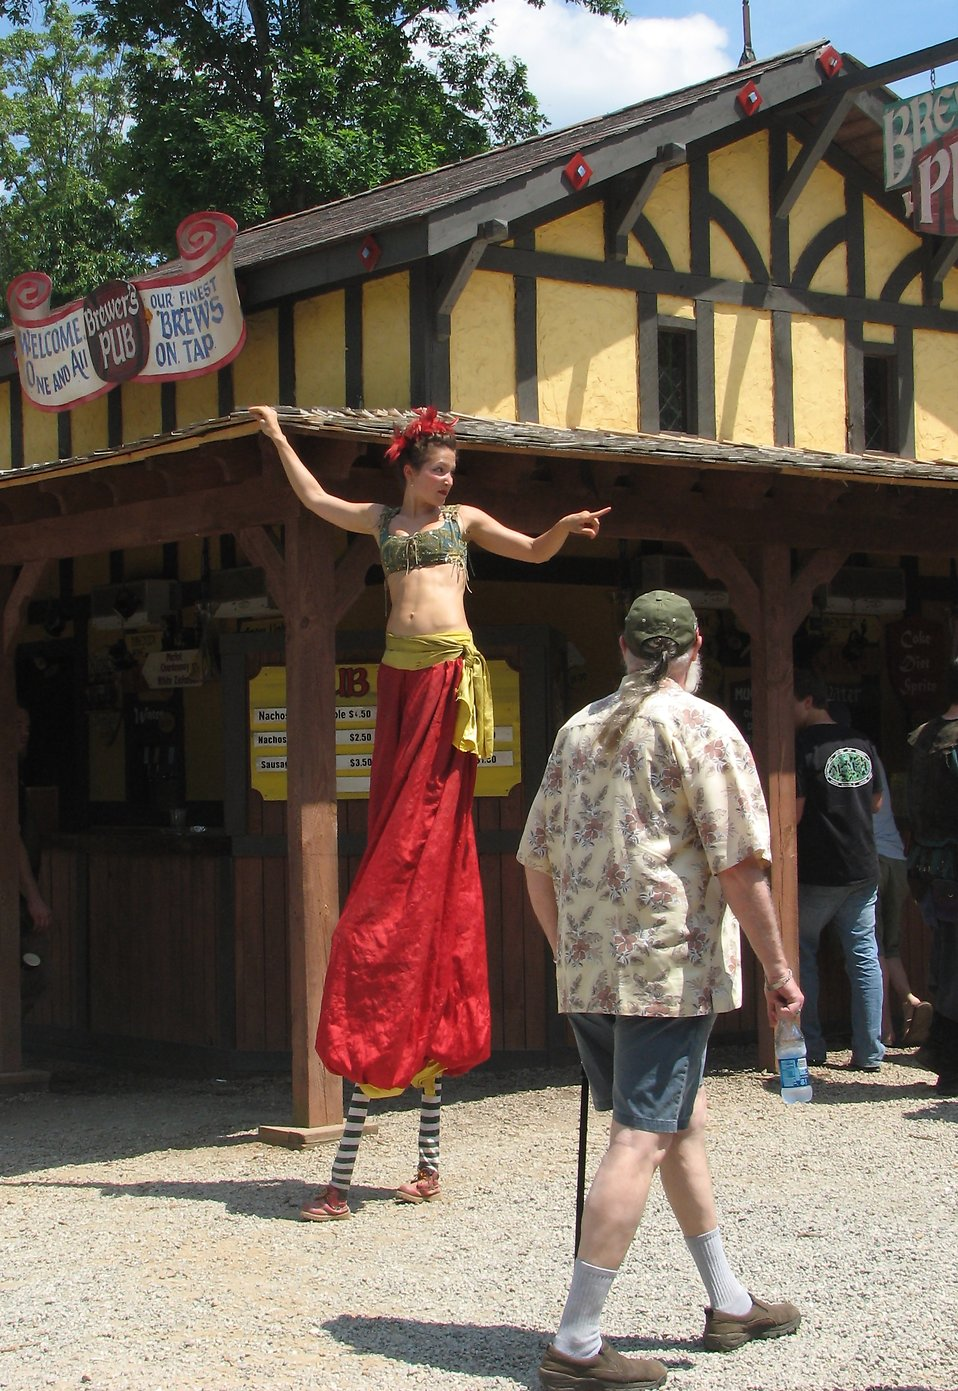 Female acrobat on stilts giving directions : Free Stock Photo